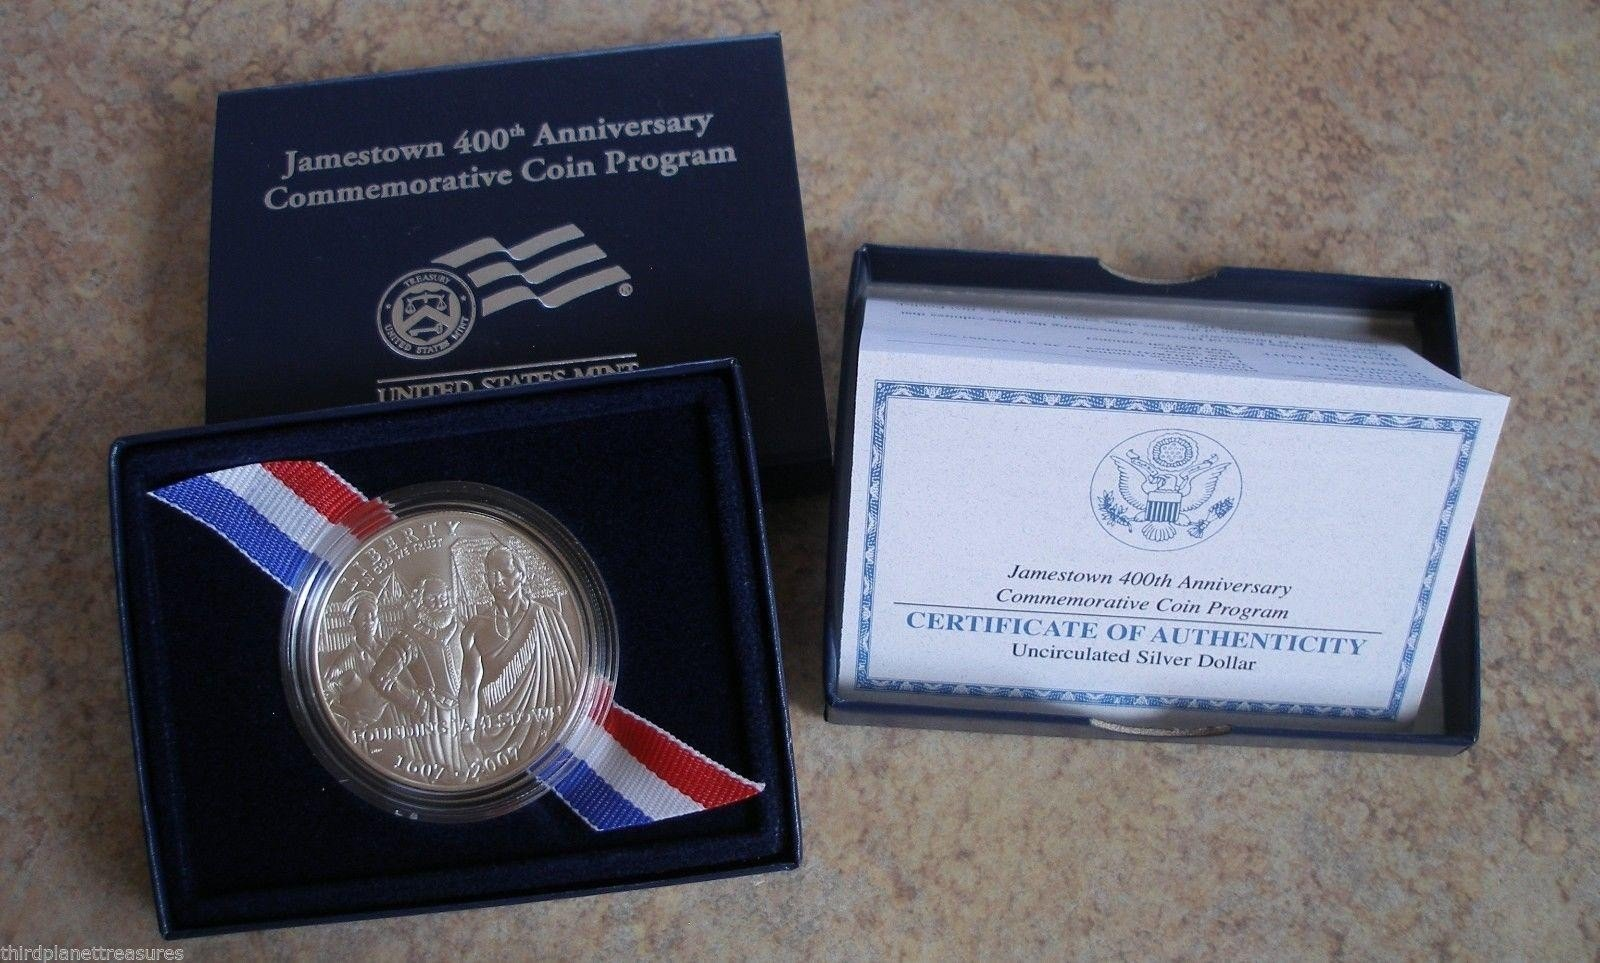 2007-P Jamestown 400th Anniversary Commemorative Silver Dollar Mint State